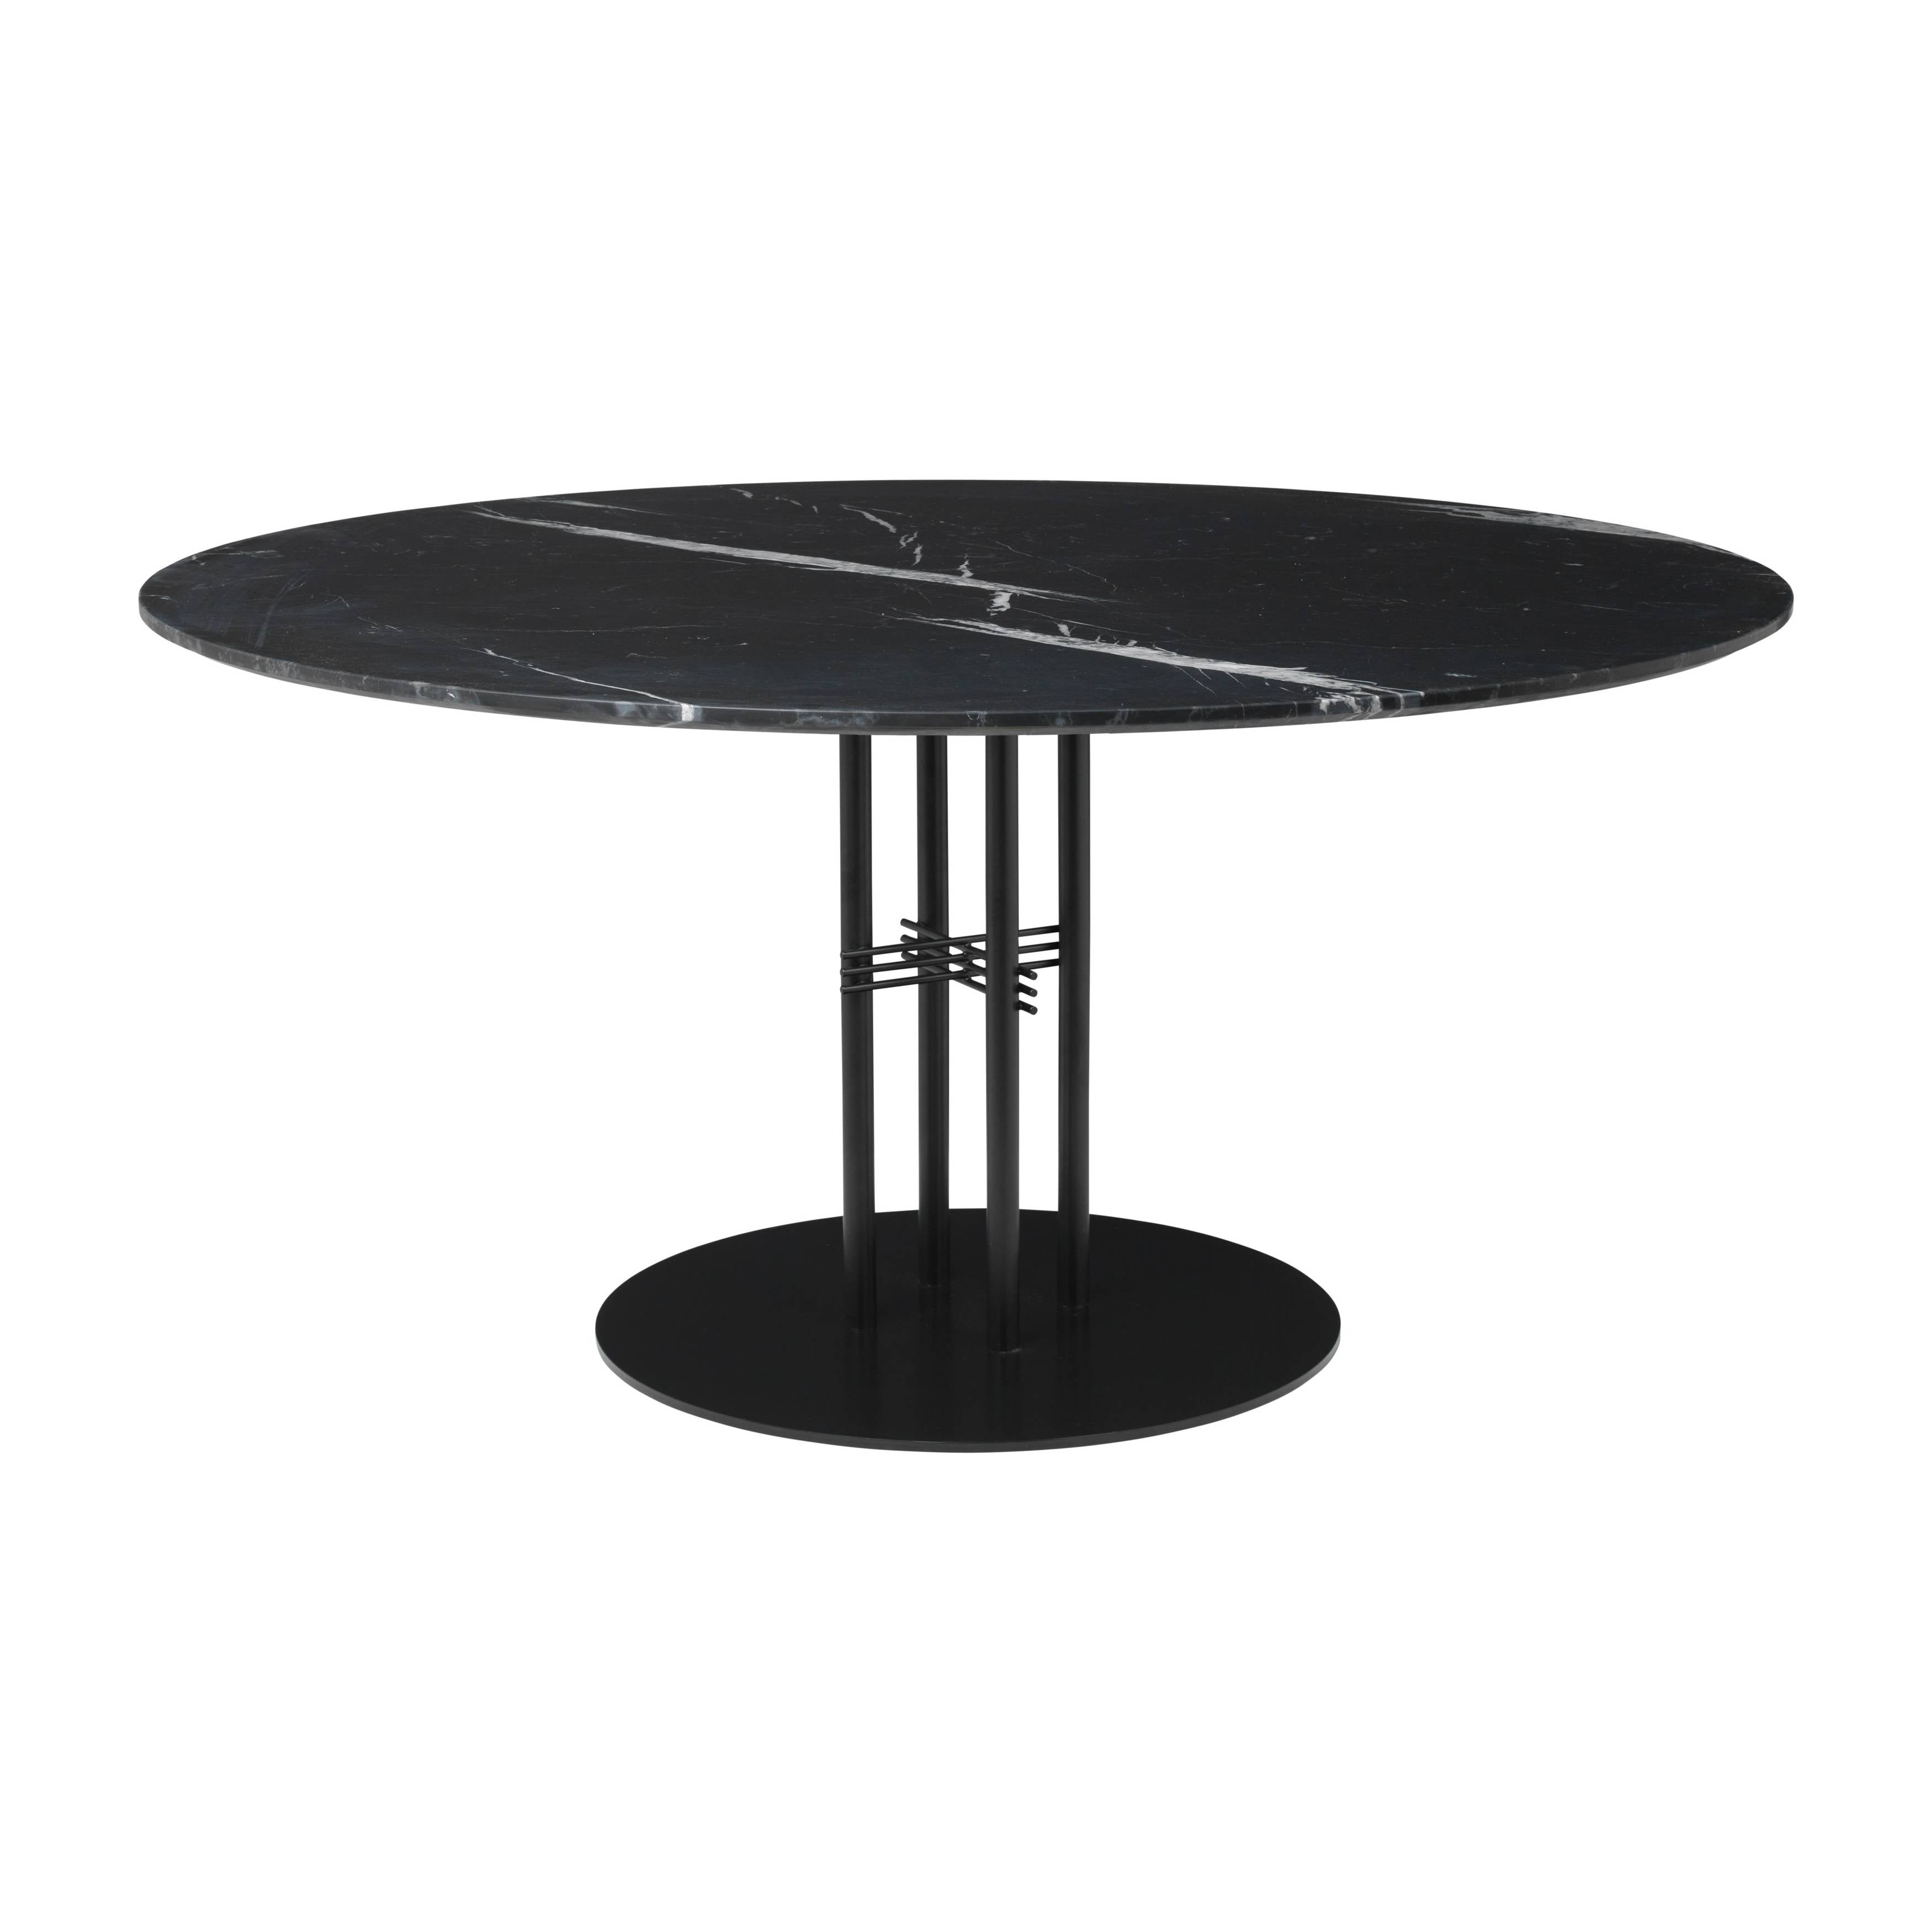 TS Column Dining Table: Extra Large + Black Base + Black Marquina Marble